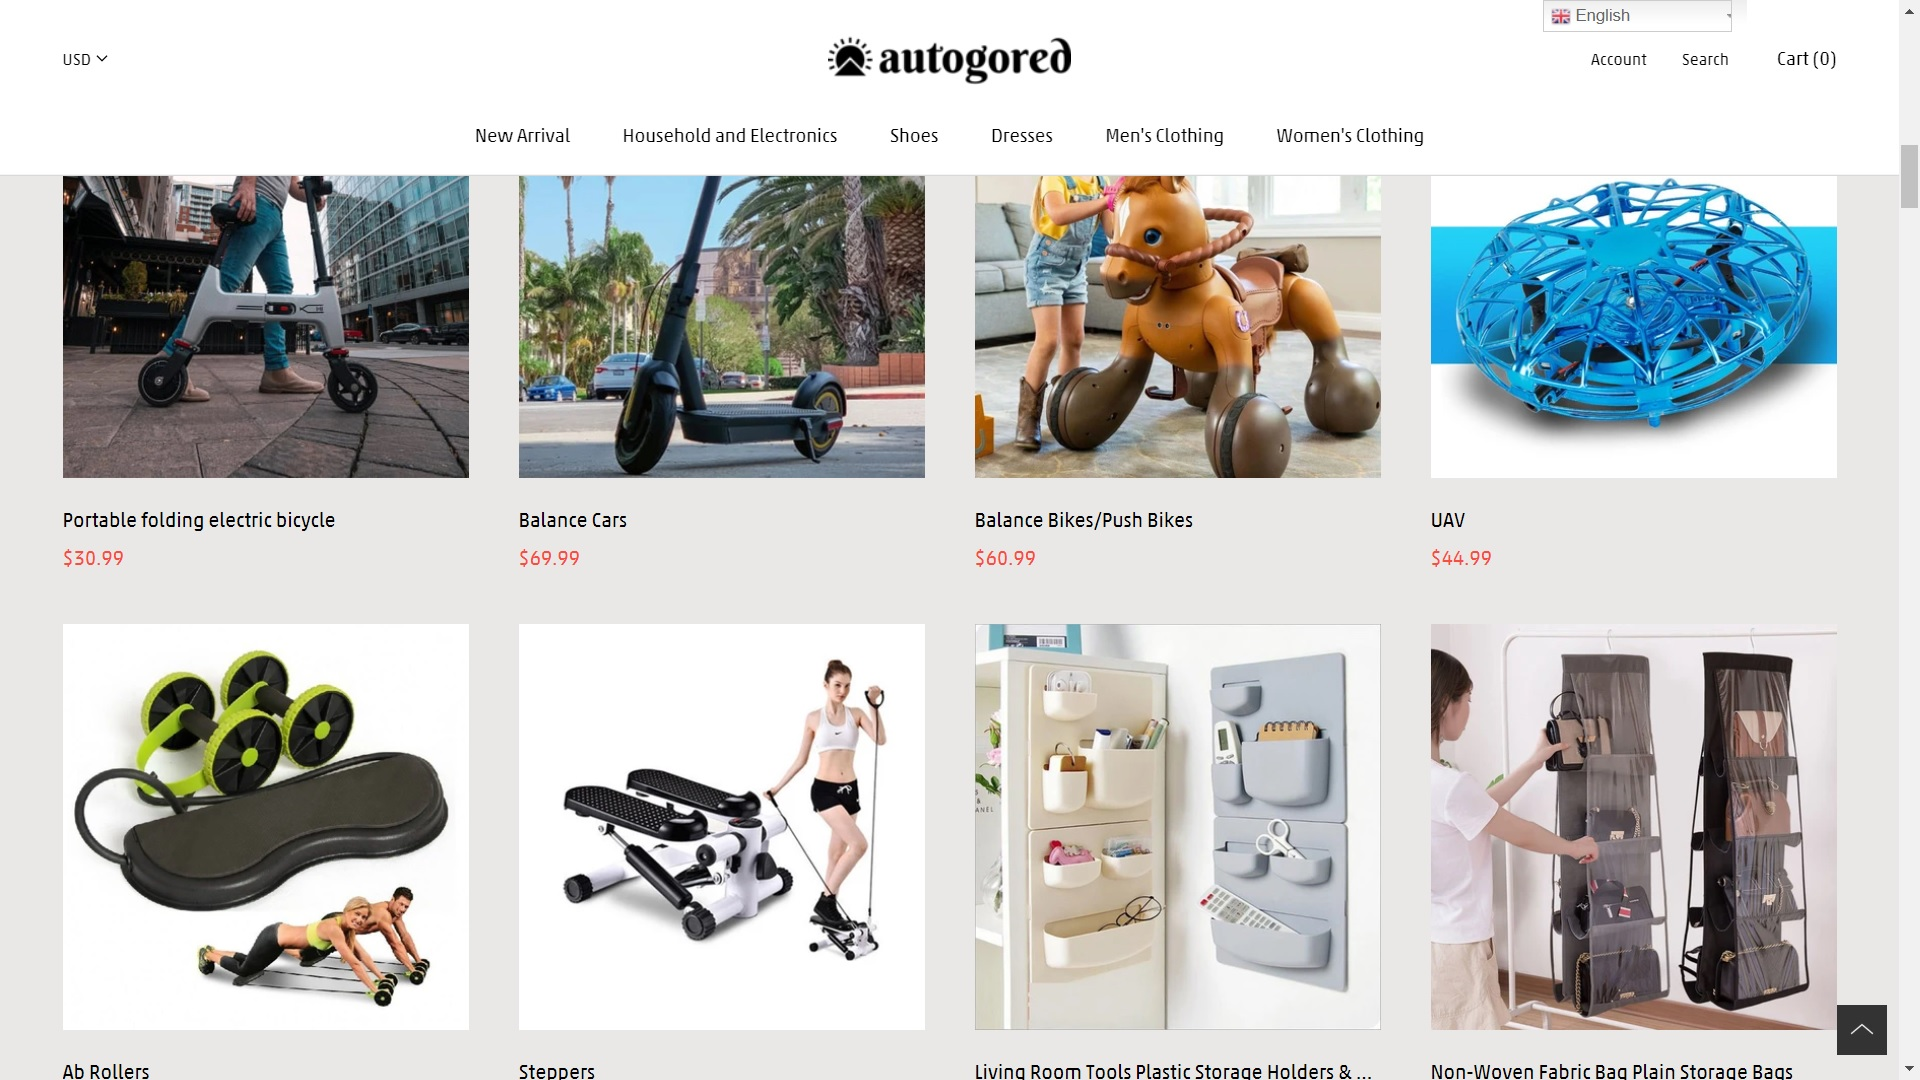 Is Autogored a Scam? See the Review of the Online Store